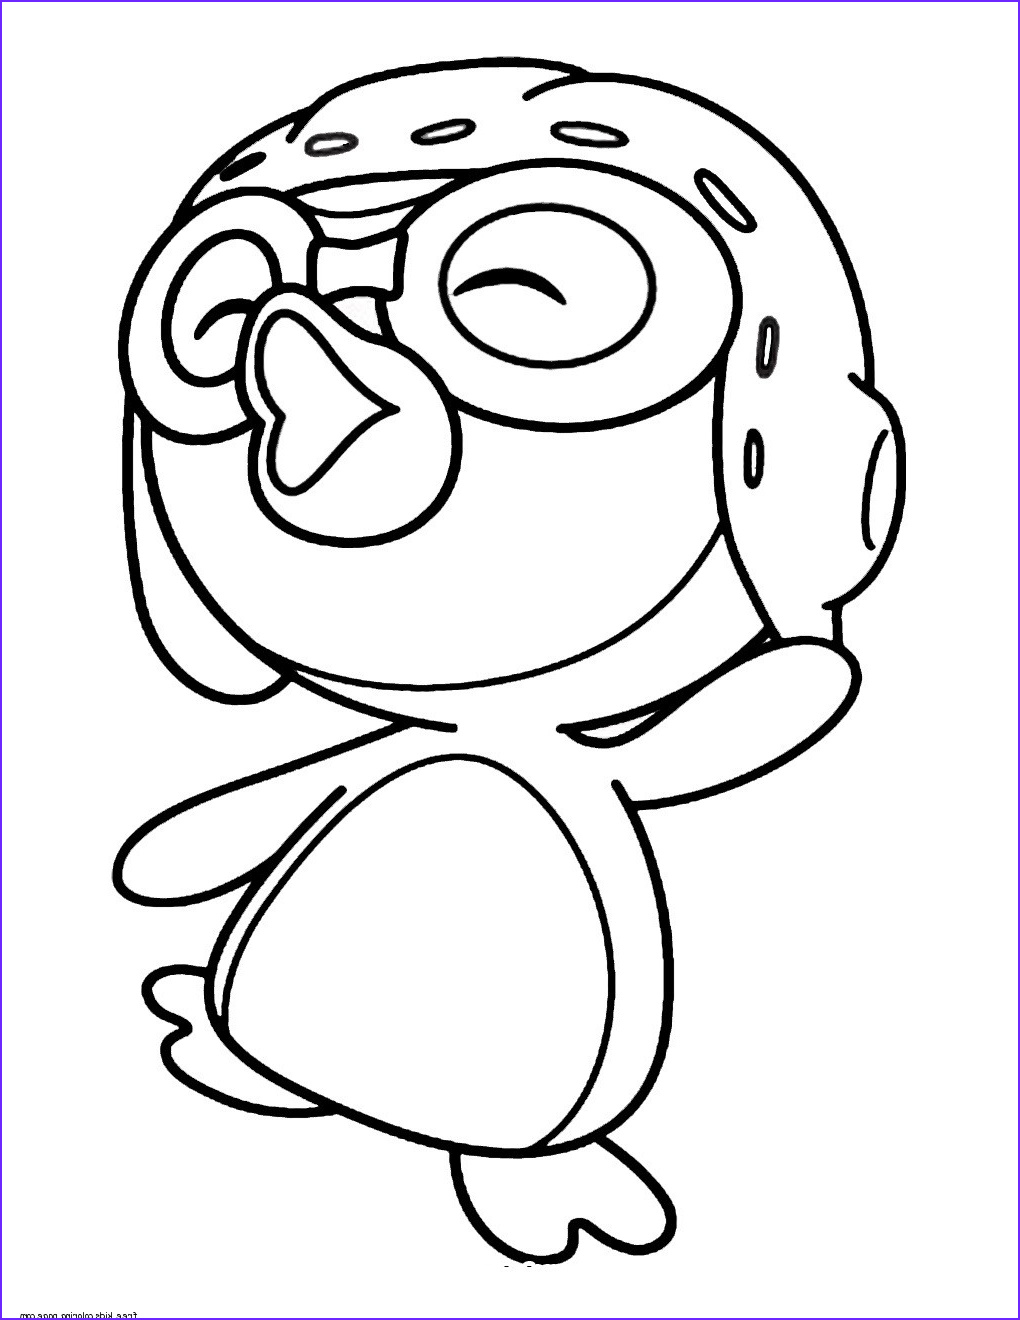 printable pororo the little penguin coloring pages for kids